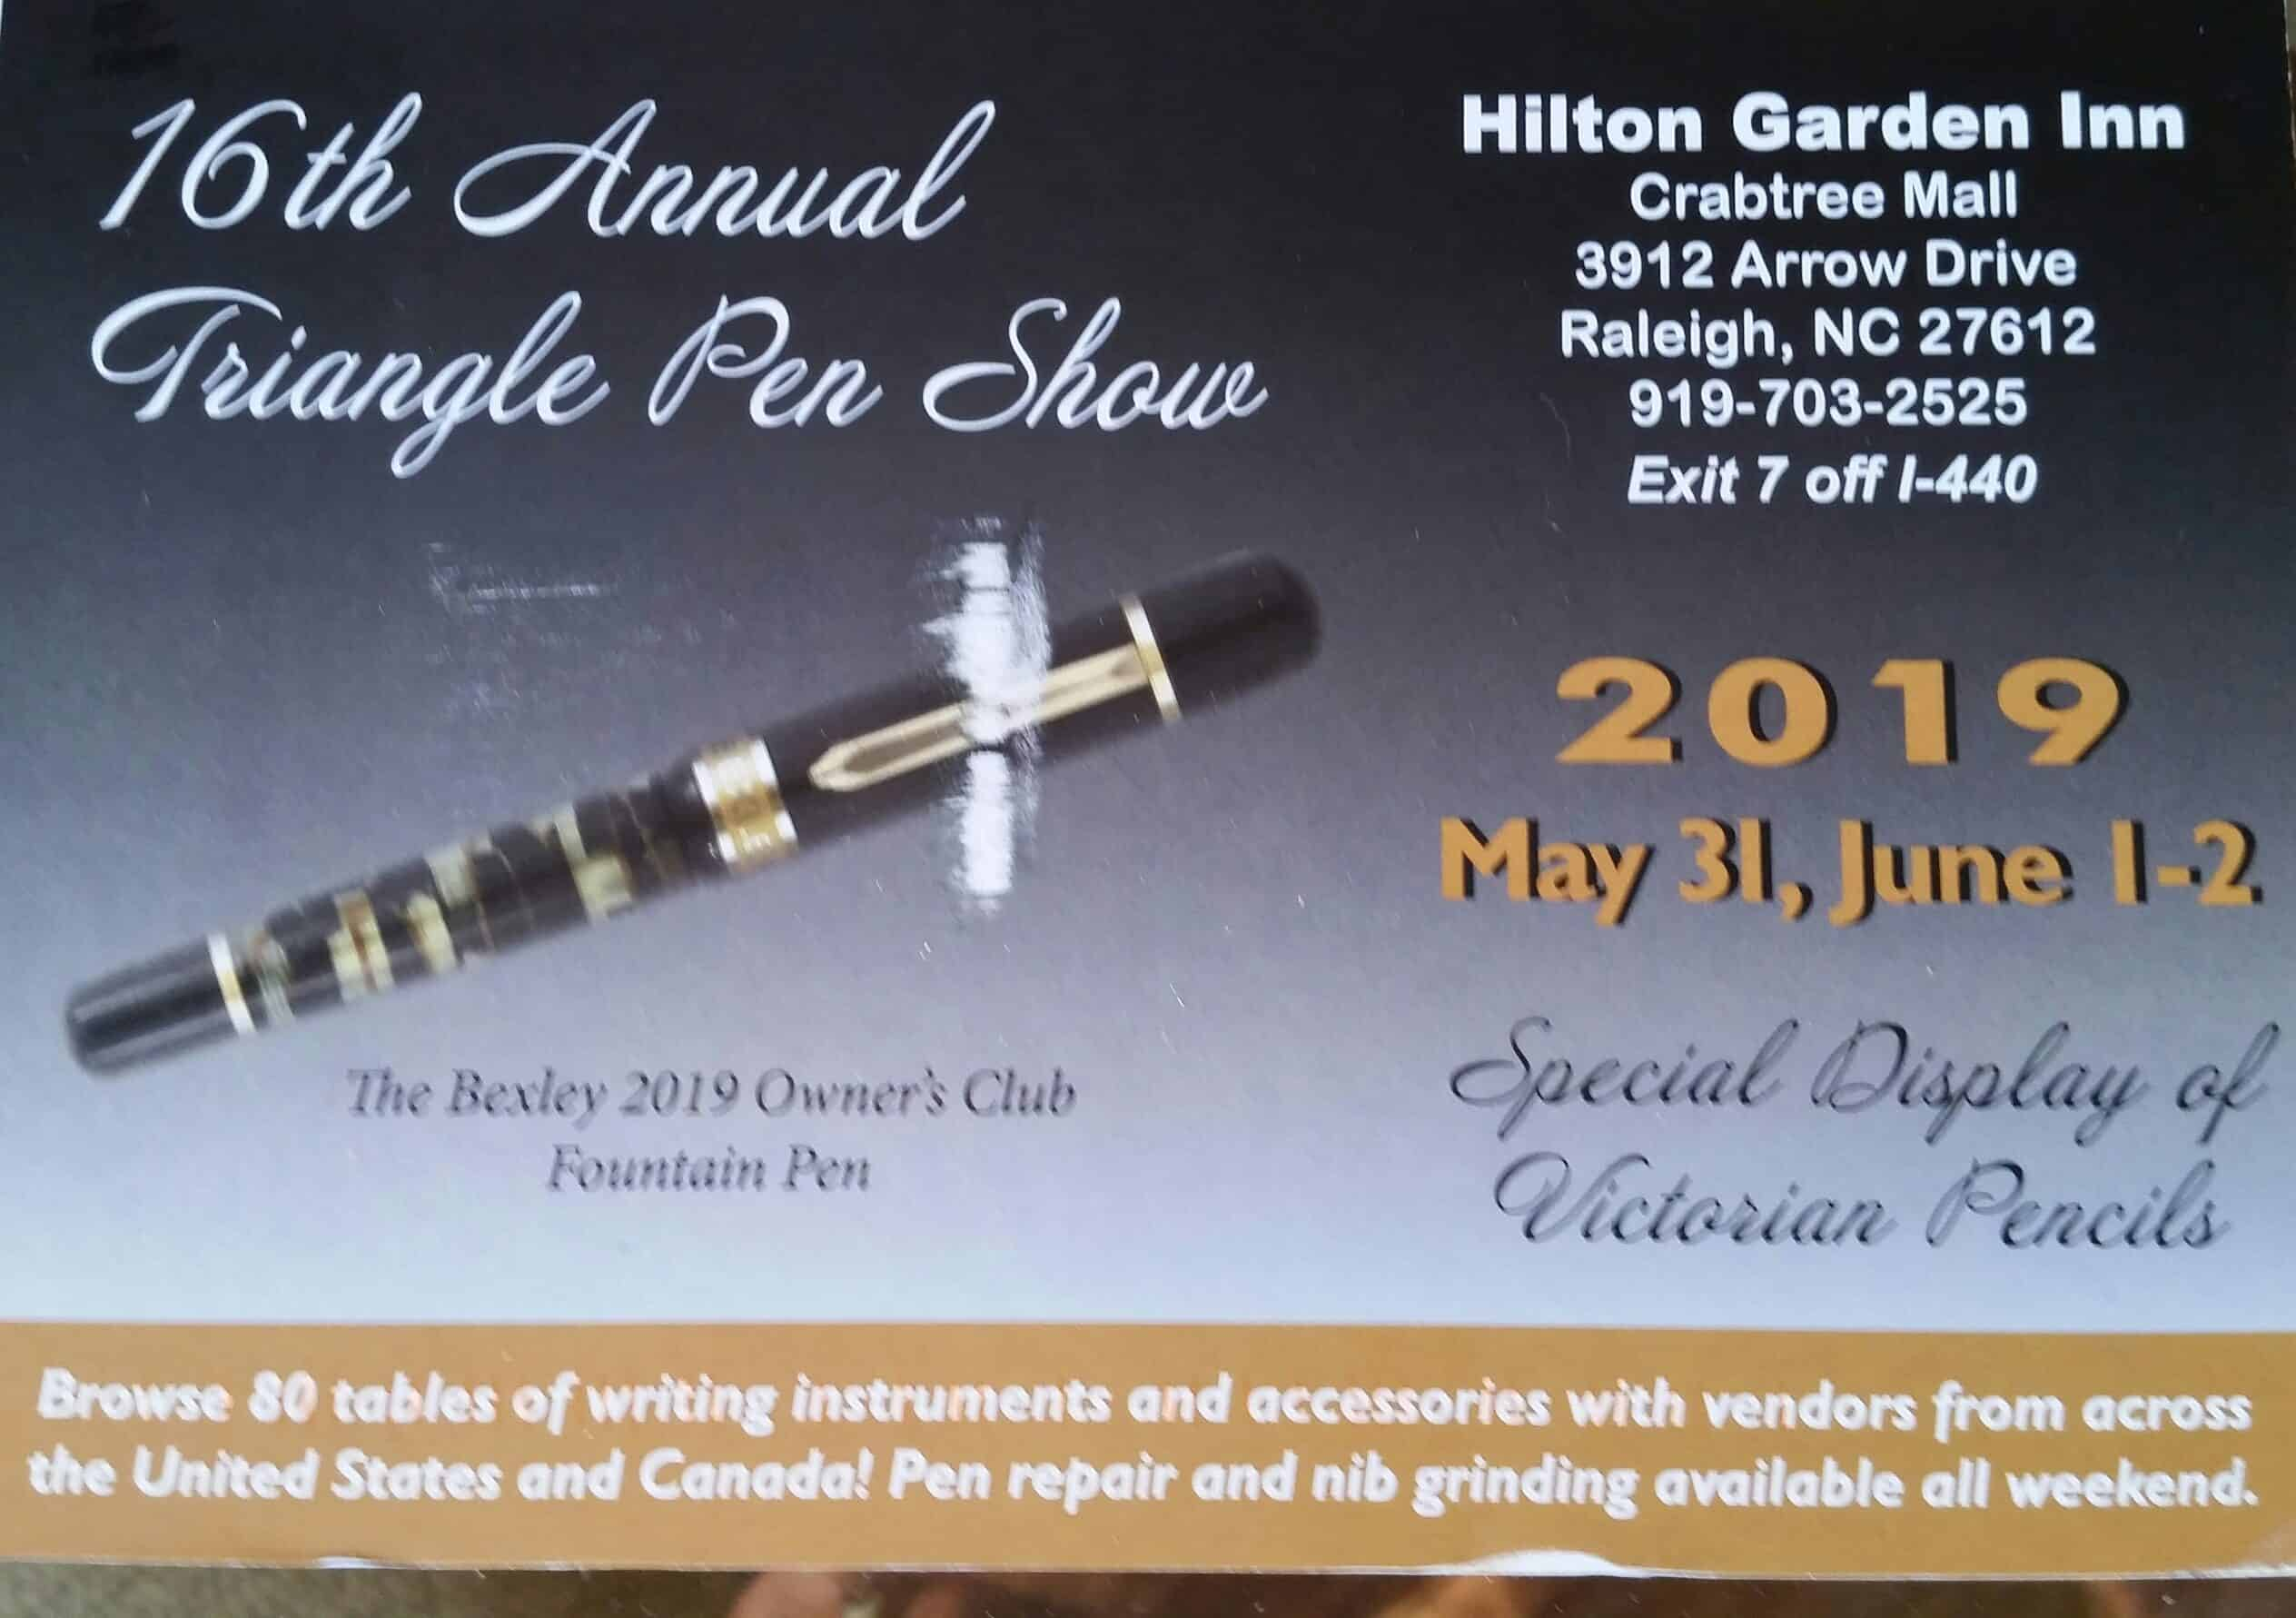 2019 Triangle Pen Show Postcard